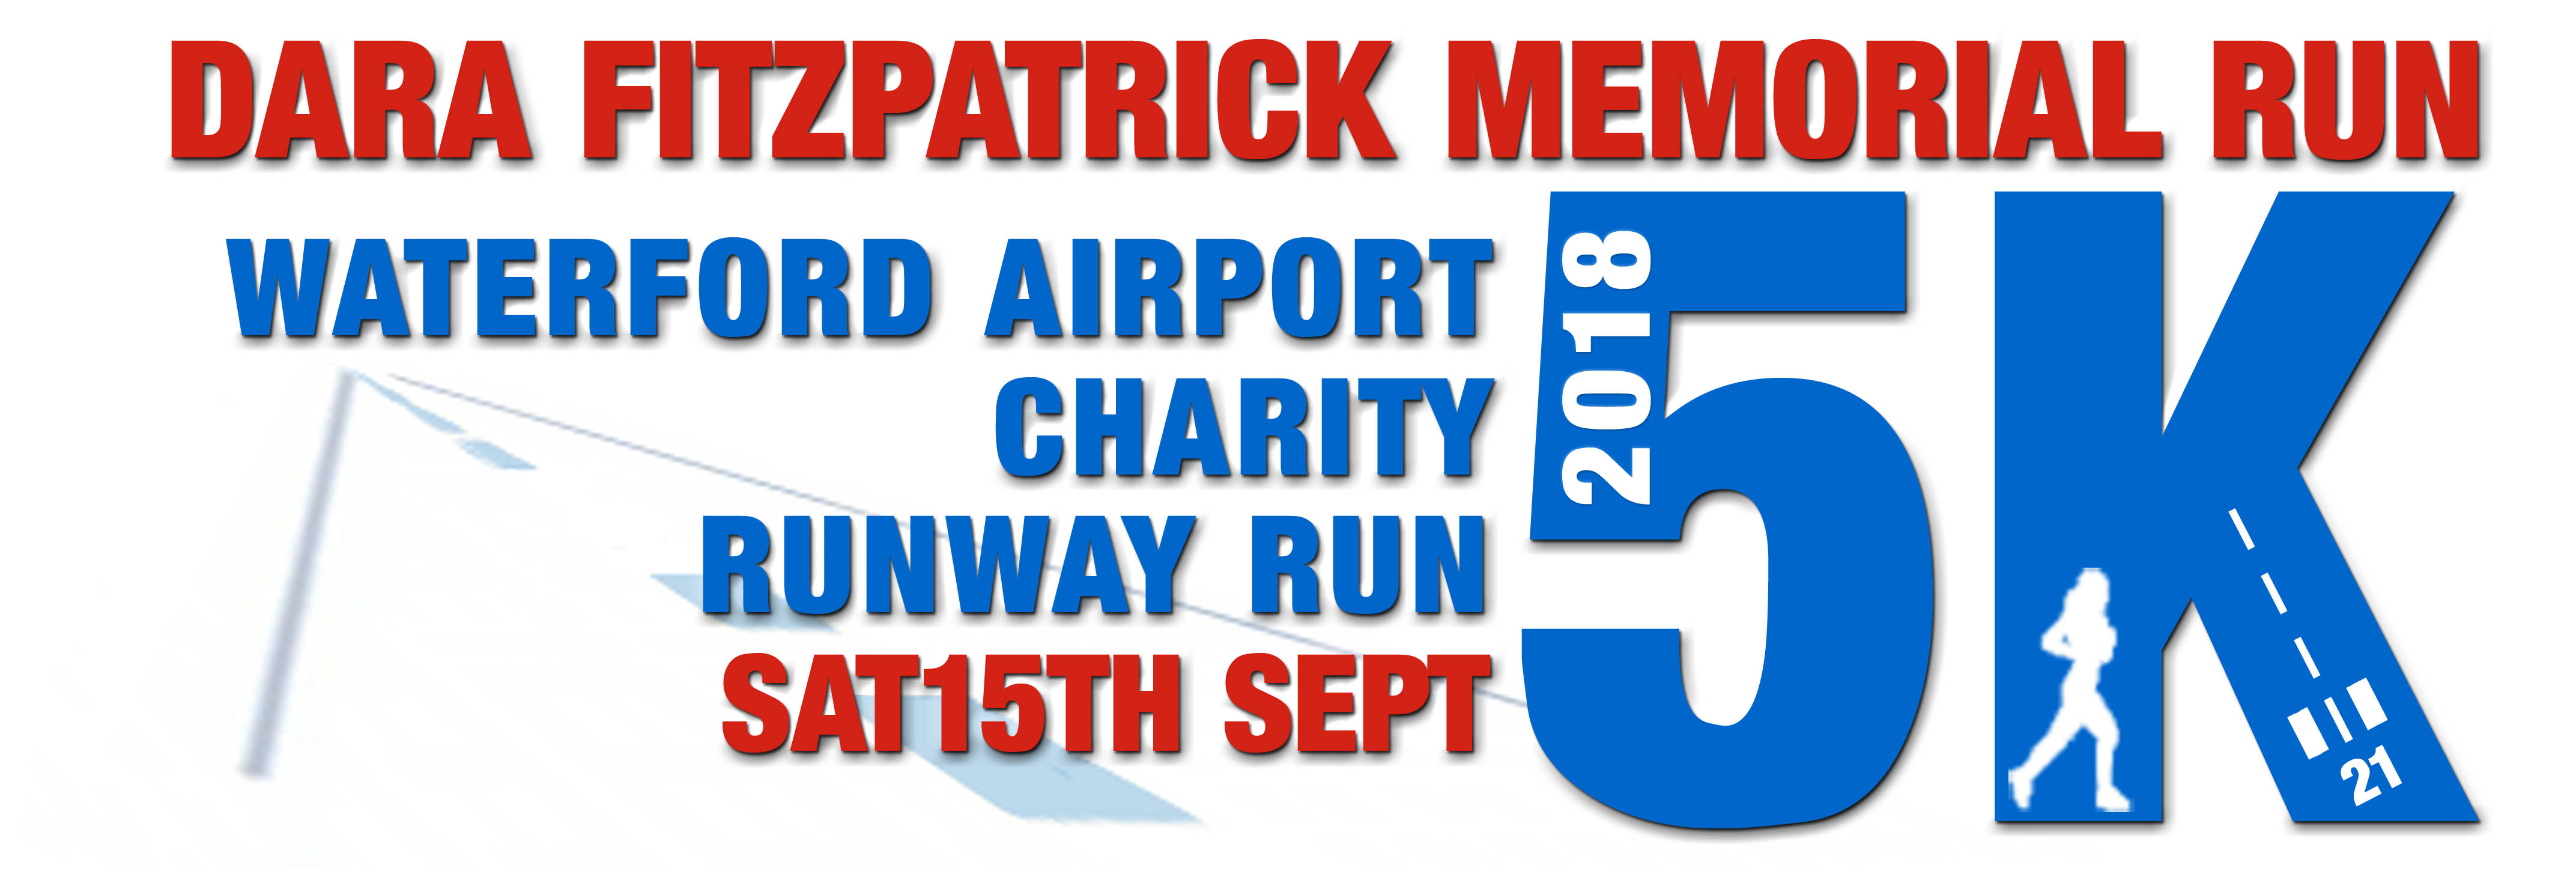 Dara Fitzpatrick Memorial Run logo 2018